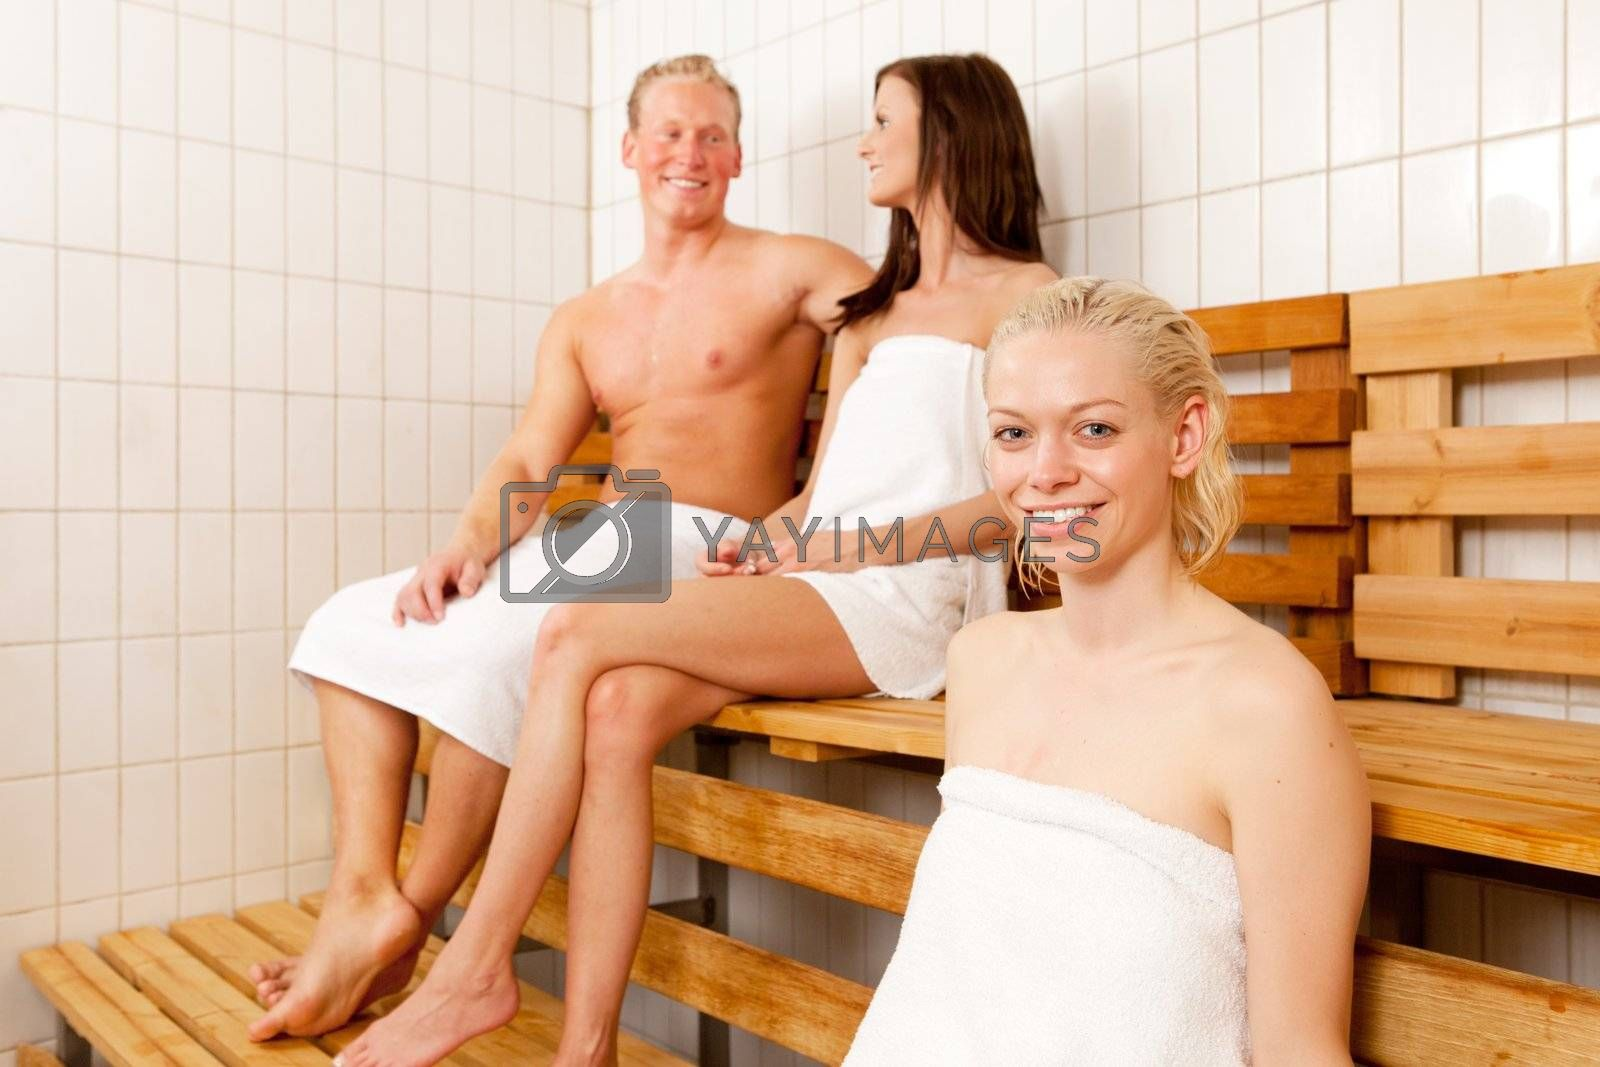 Portrait of a woman with friends in a sauna